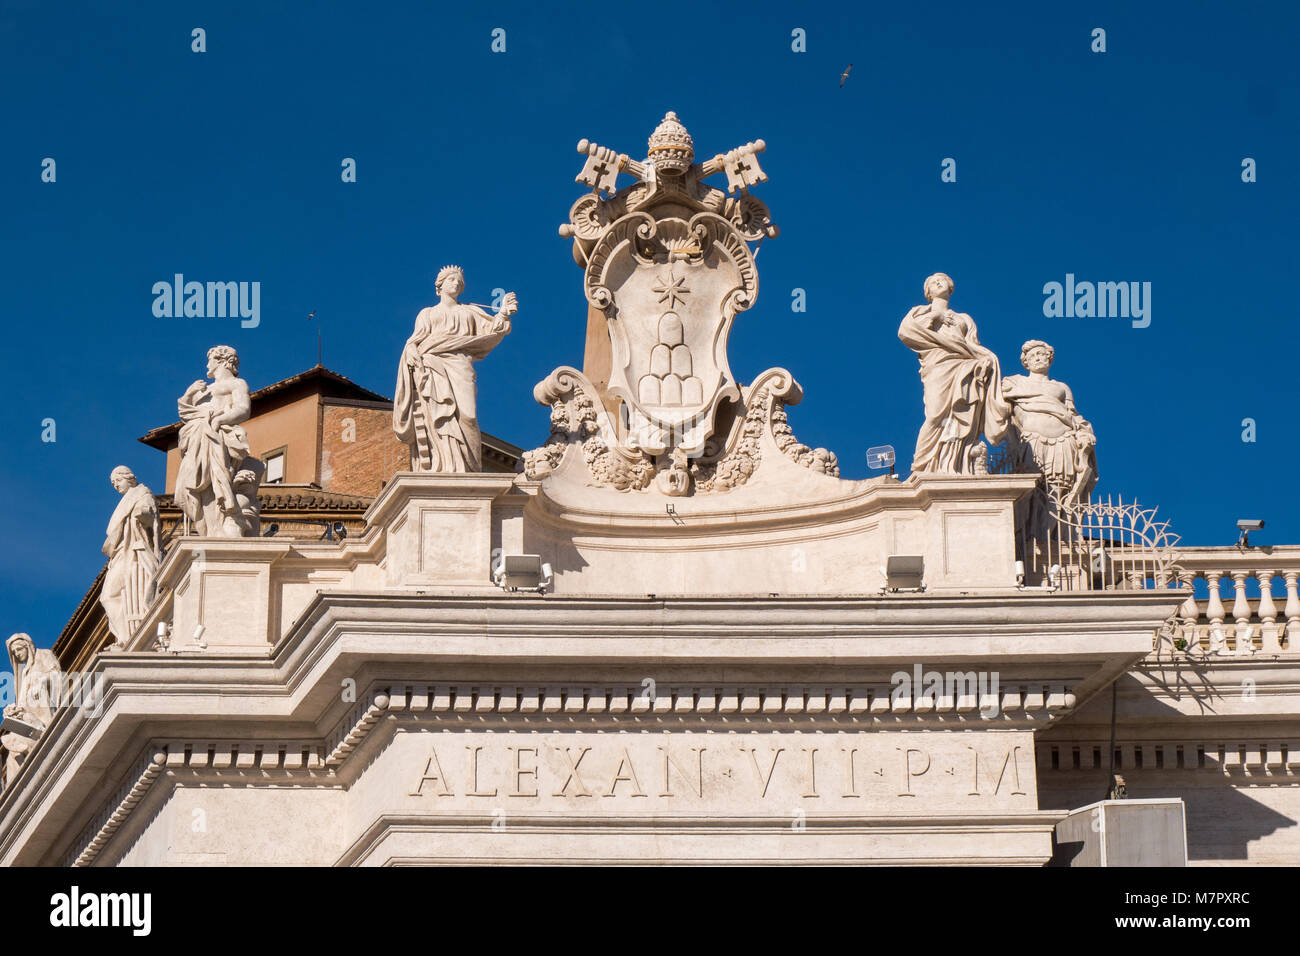 Statues surrounding Sant Peter's Square in Vatican City Rome Italy - Stock Image